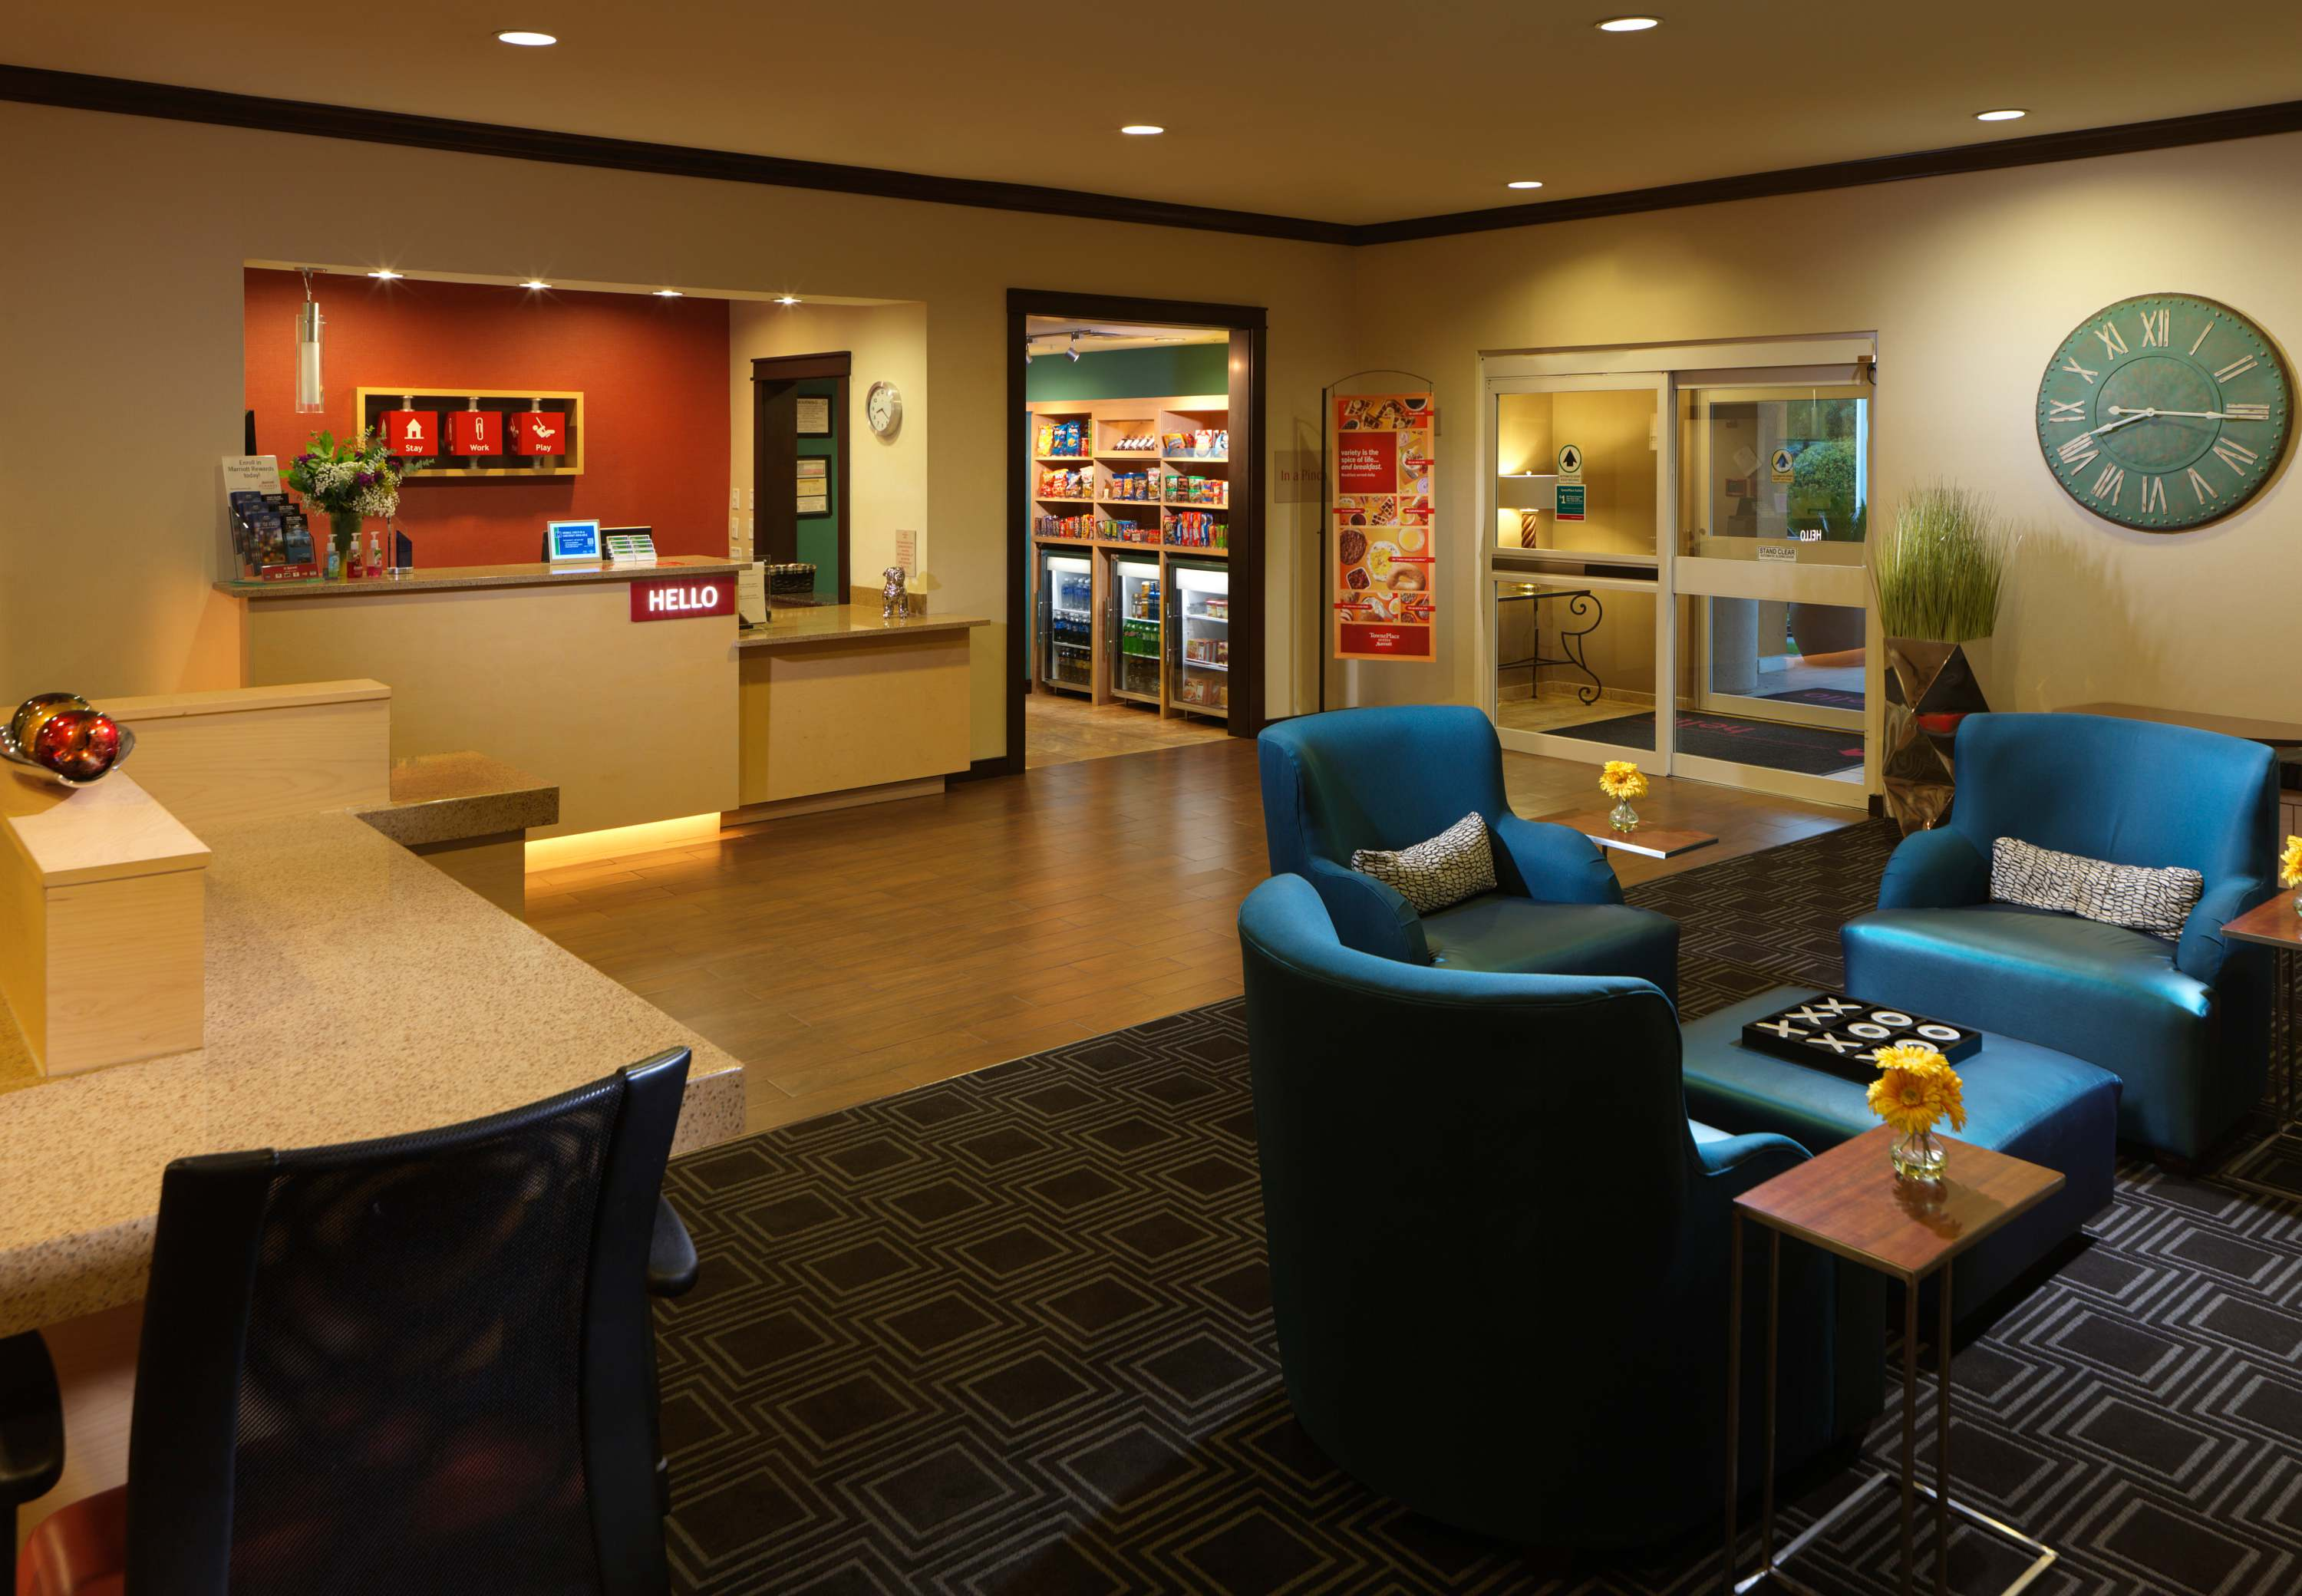 TownePlace Suites by Marriott Houston North/Shenandoah image 9